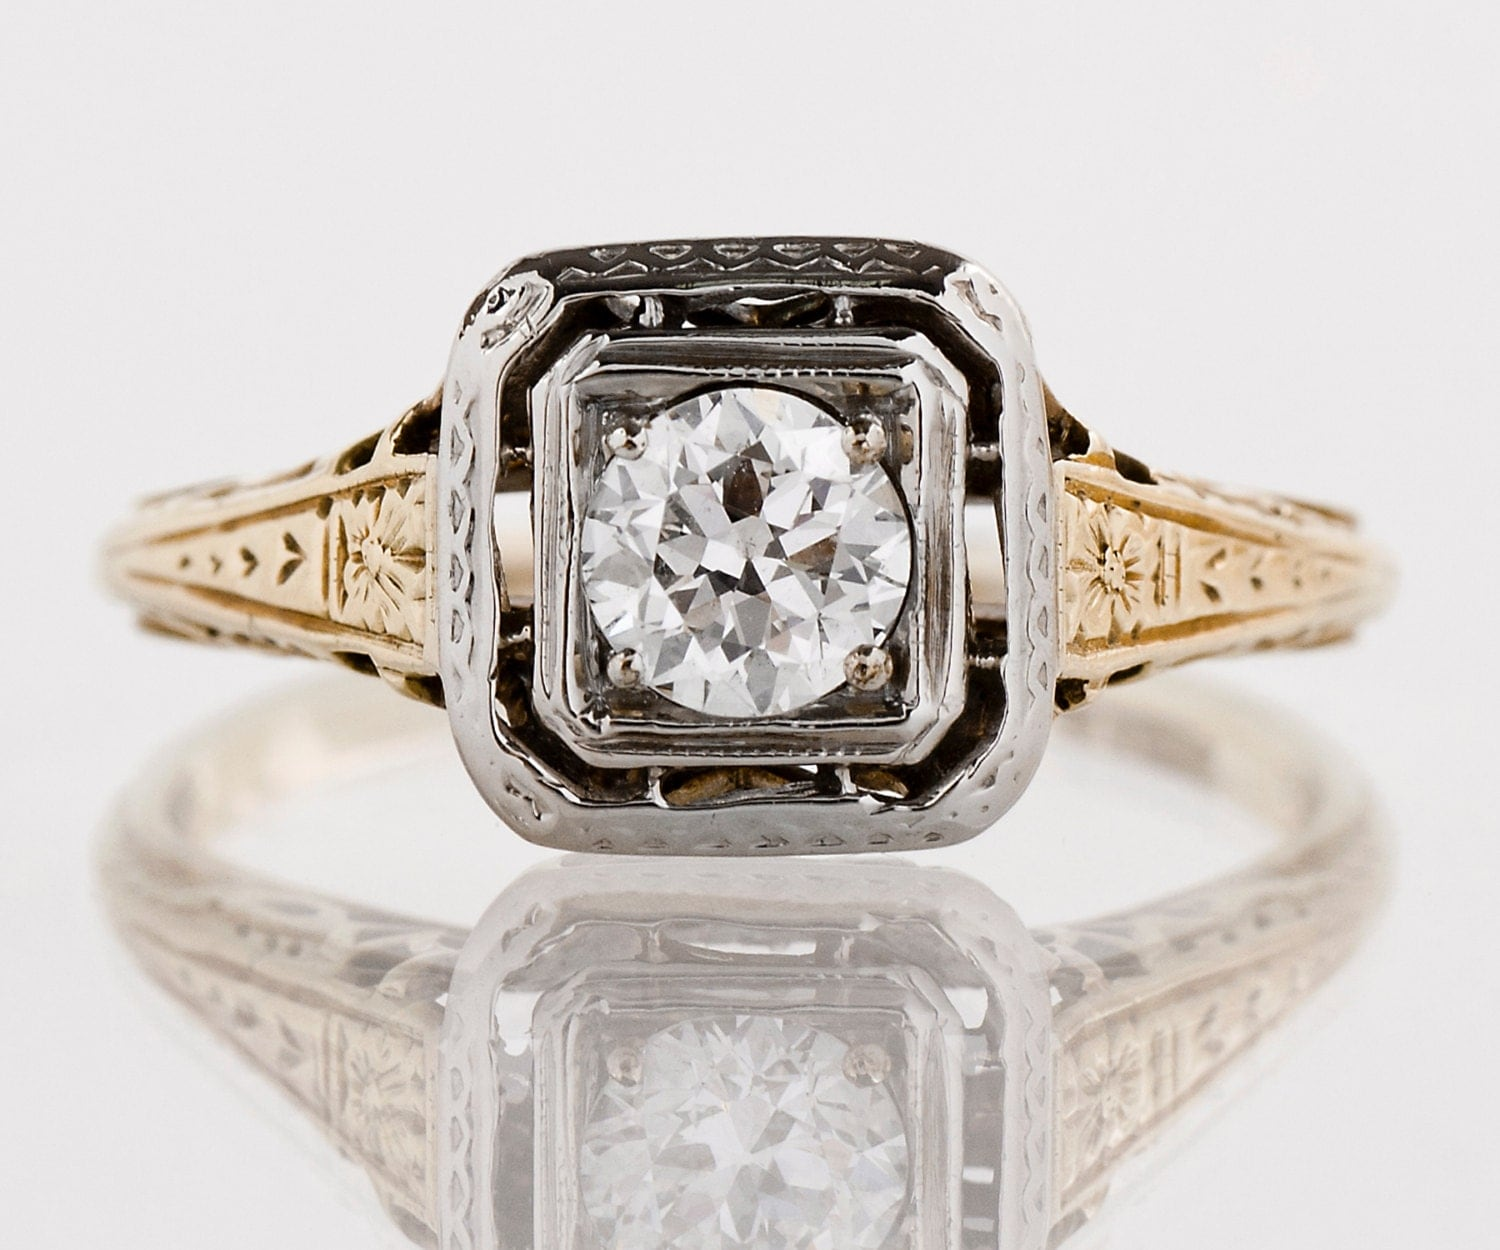 Antique Engagement Ring Antique 1920s 14k Yellow & White